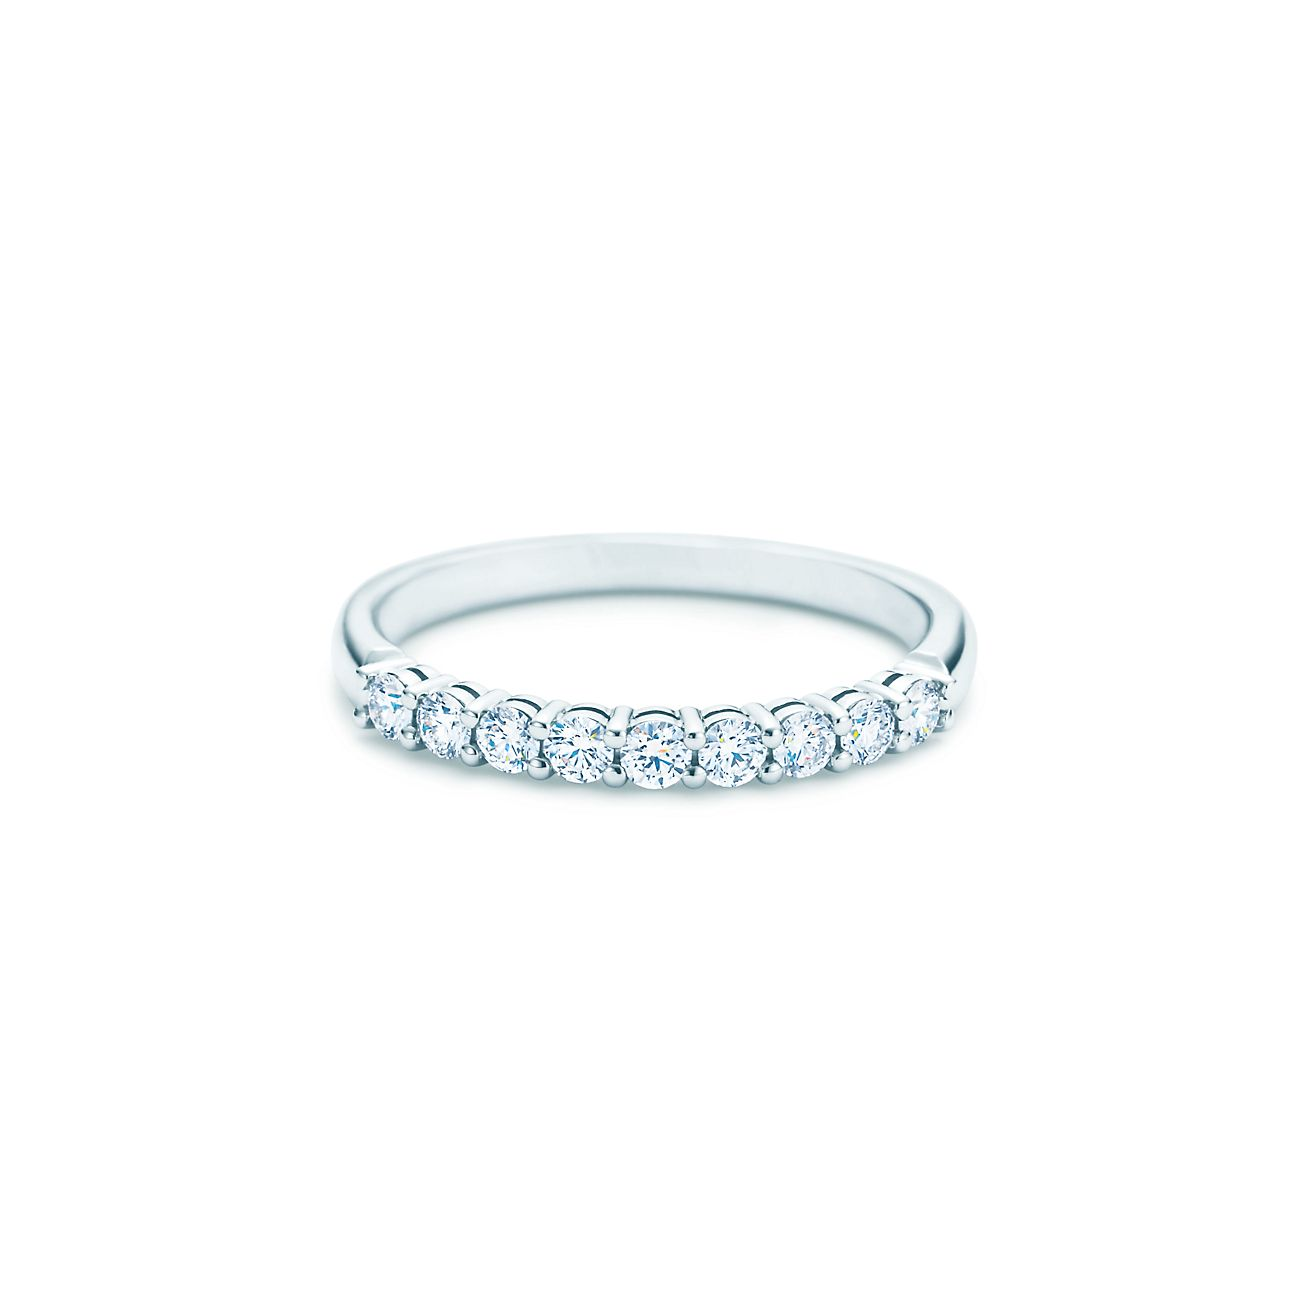 sharedsetting band ring with diamonds in platinum 22mm